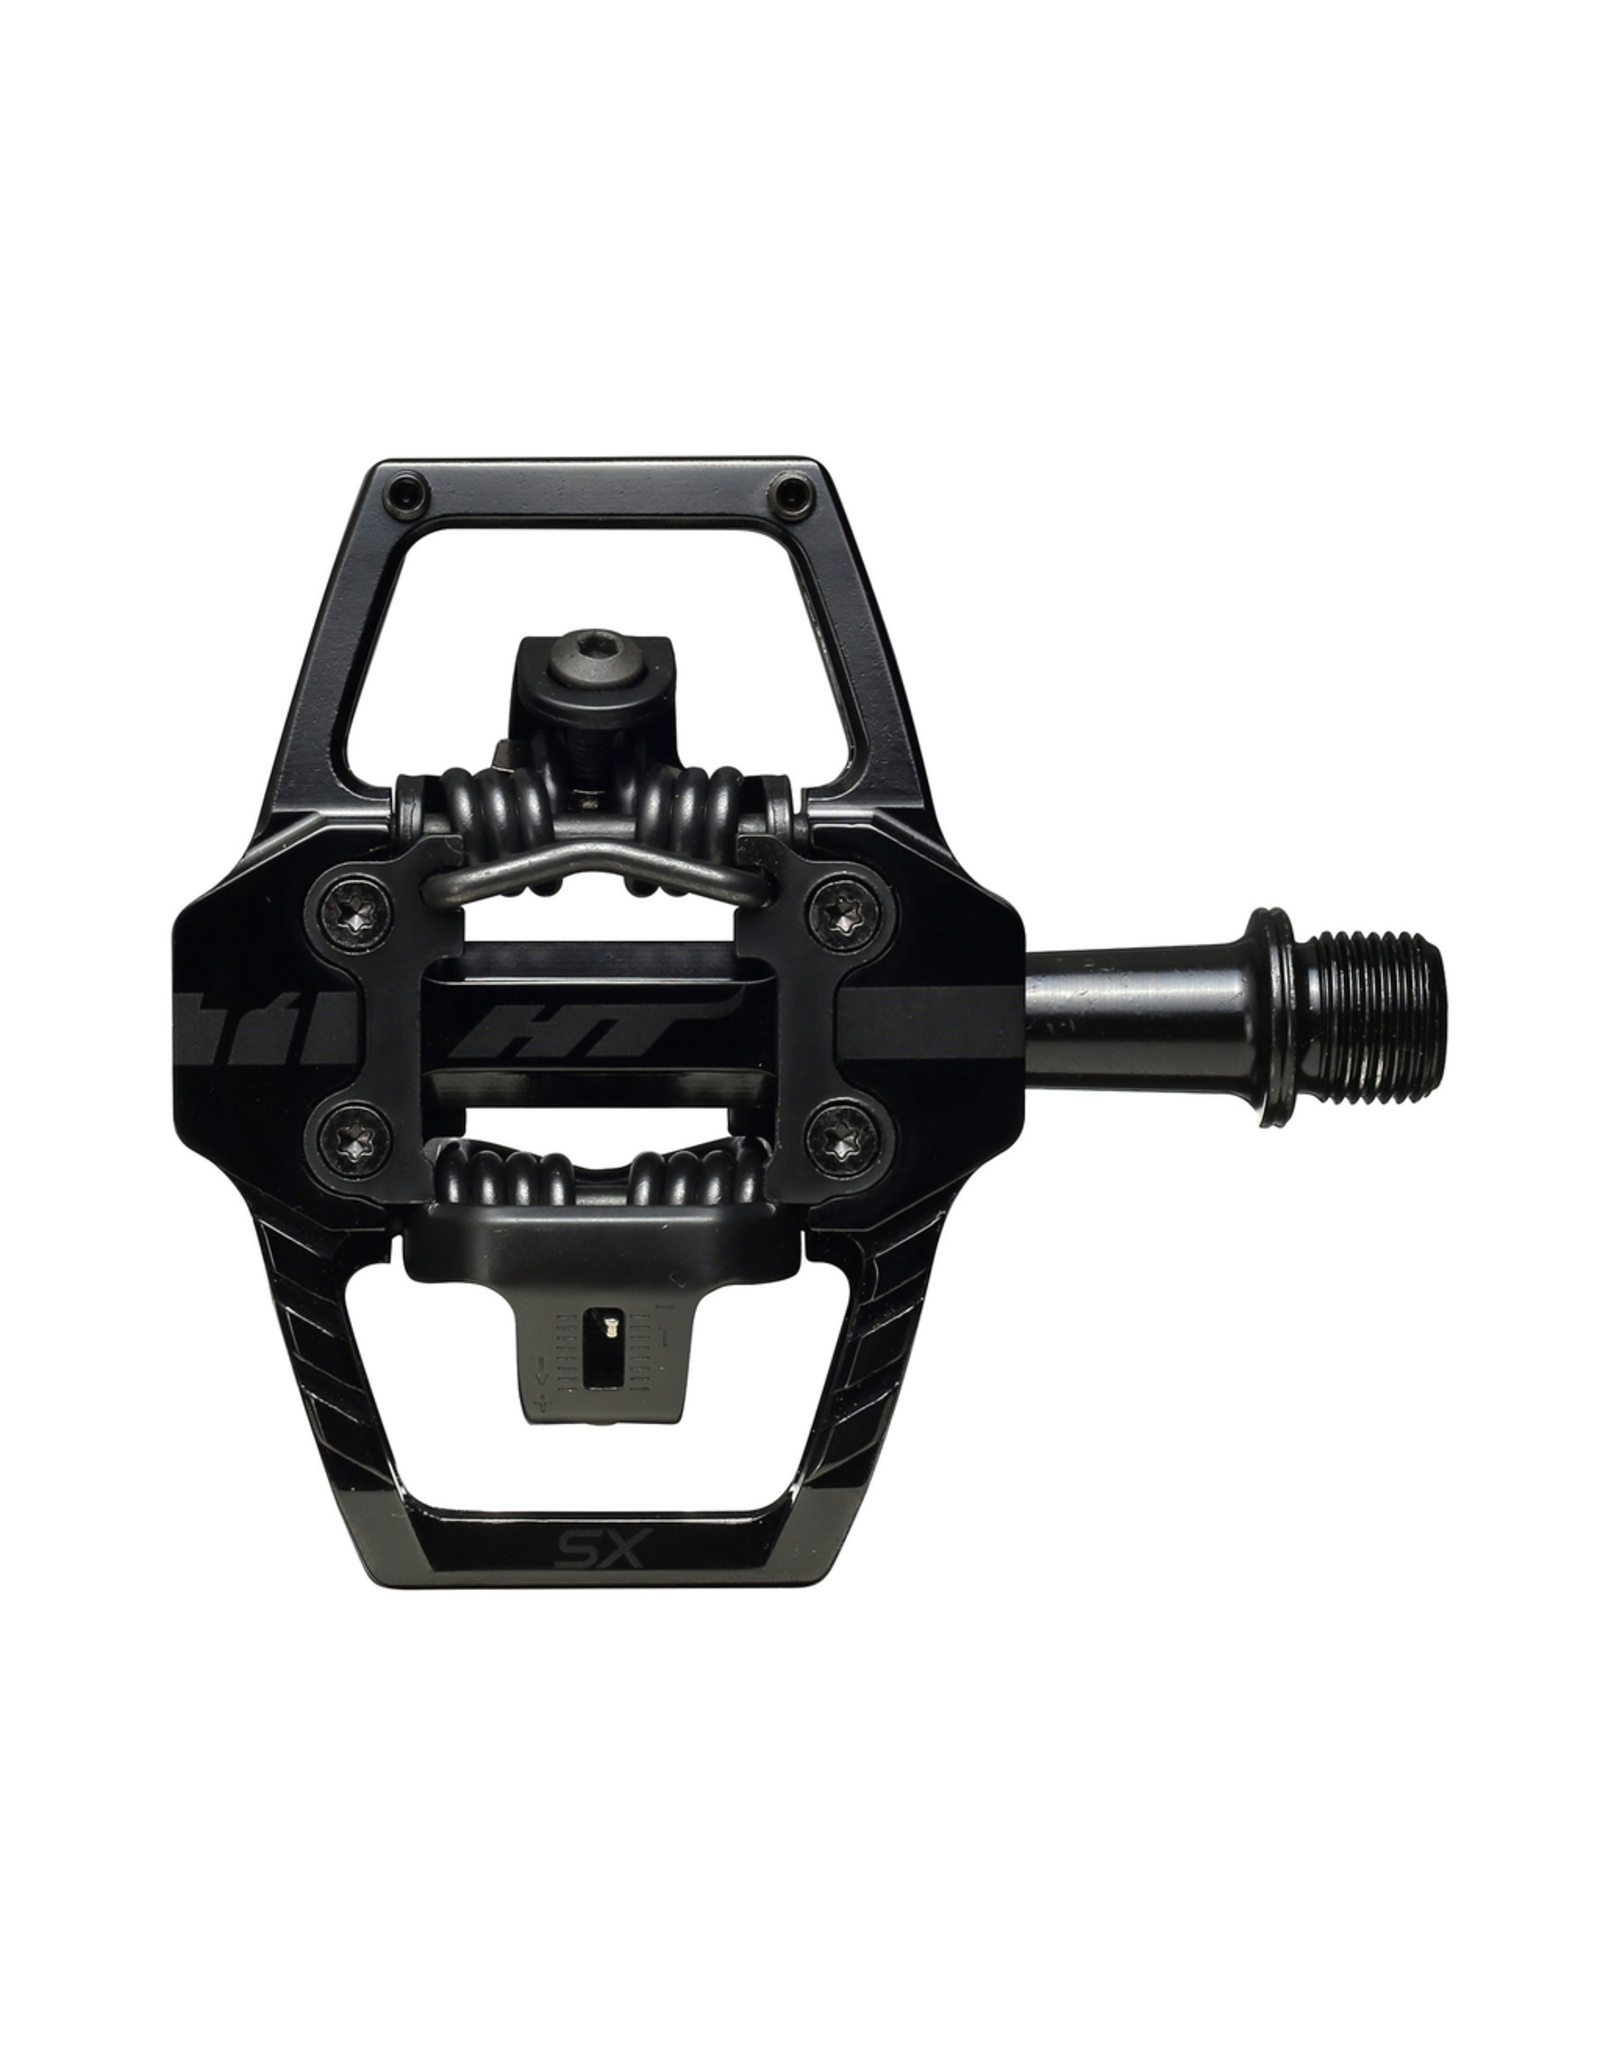 HT PEDALS PEDALS HT COMPONENTS T1 SX CR-MO STEALTH BLACK